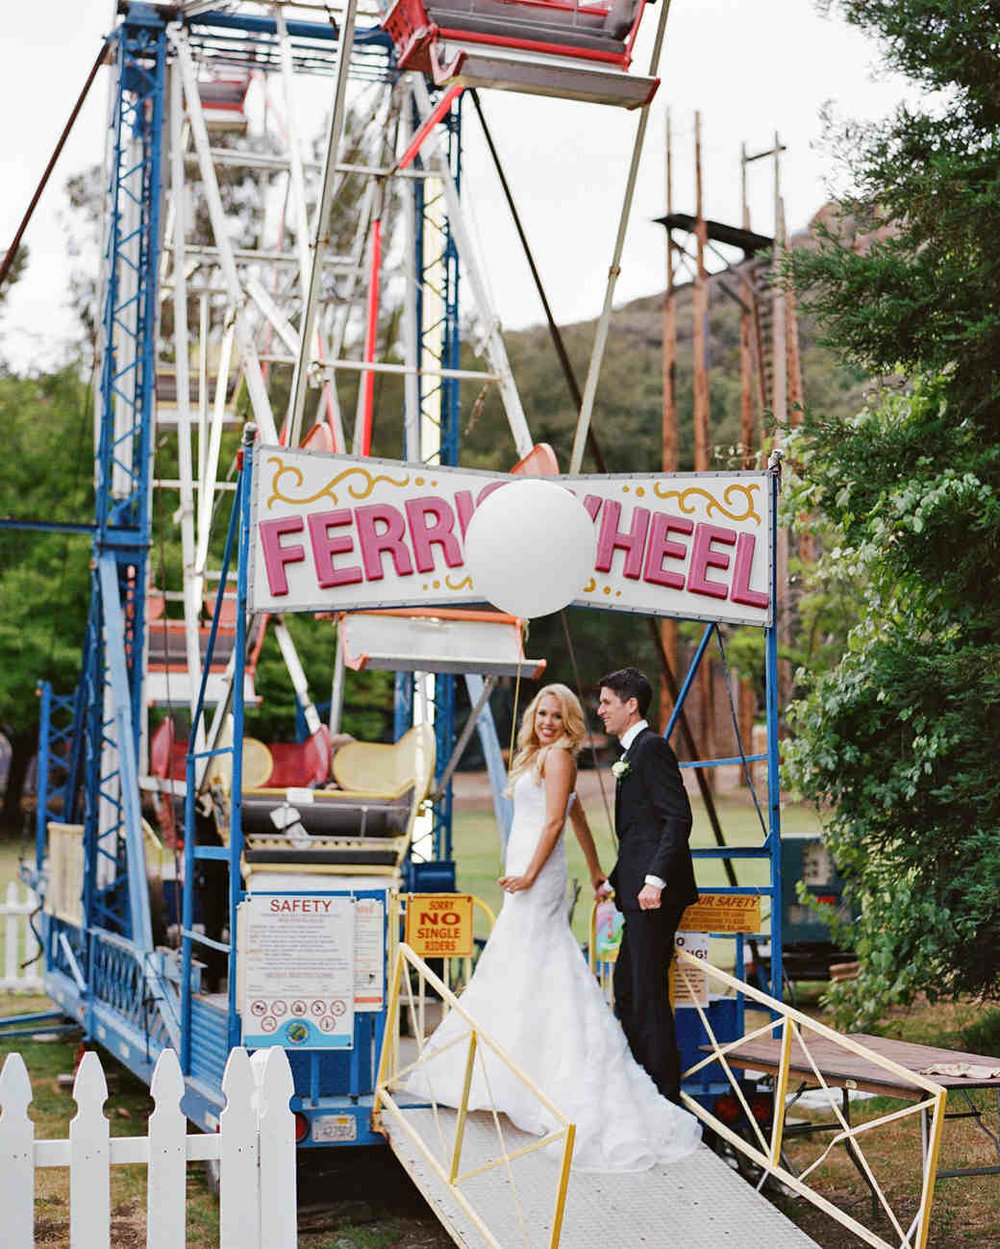 shannon-jon-wedding-couple-ferriswheel-0613-6238579-0117_vert.jpg